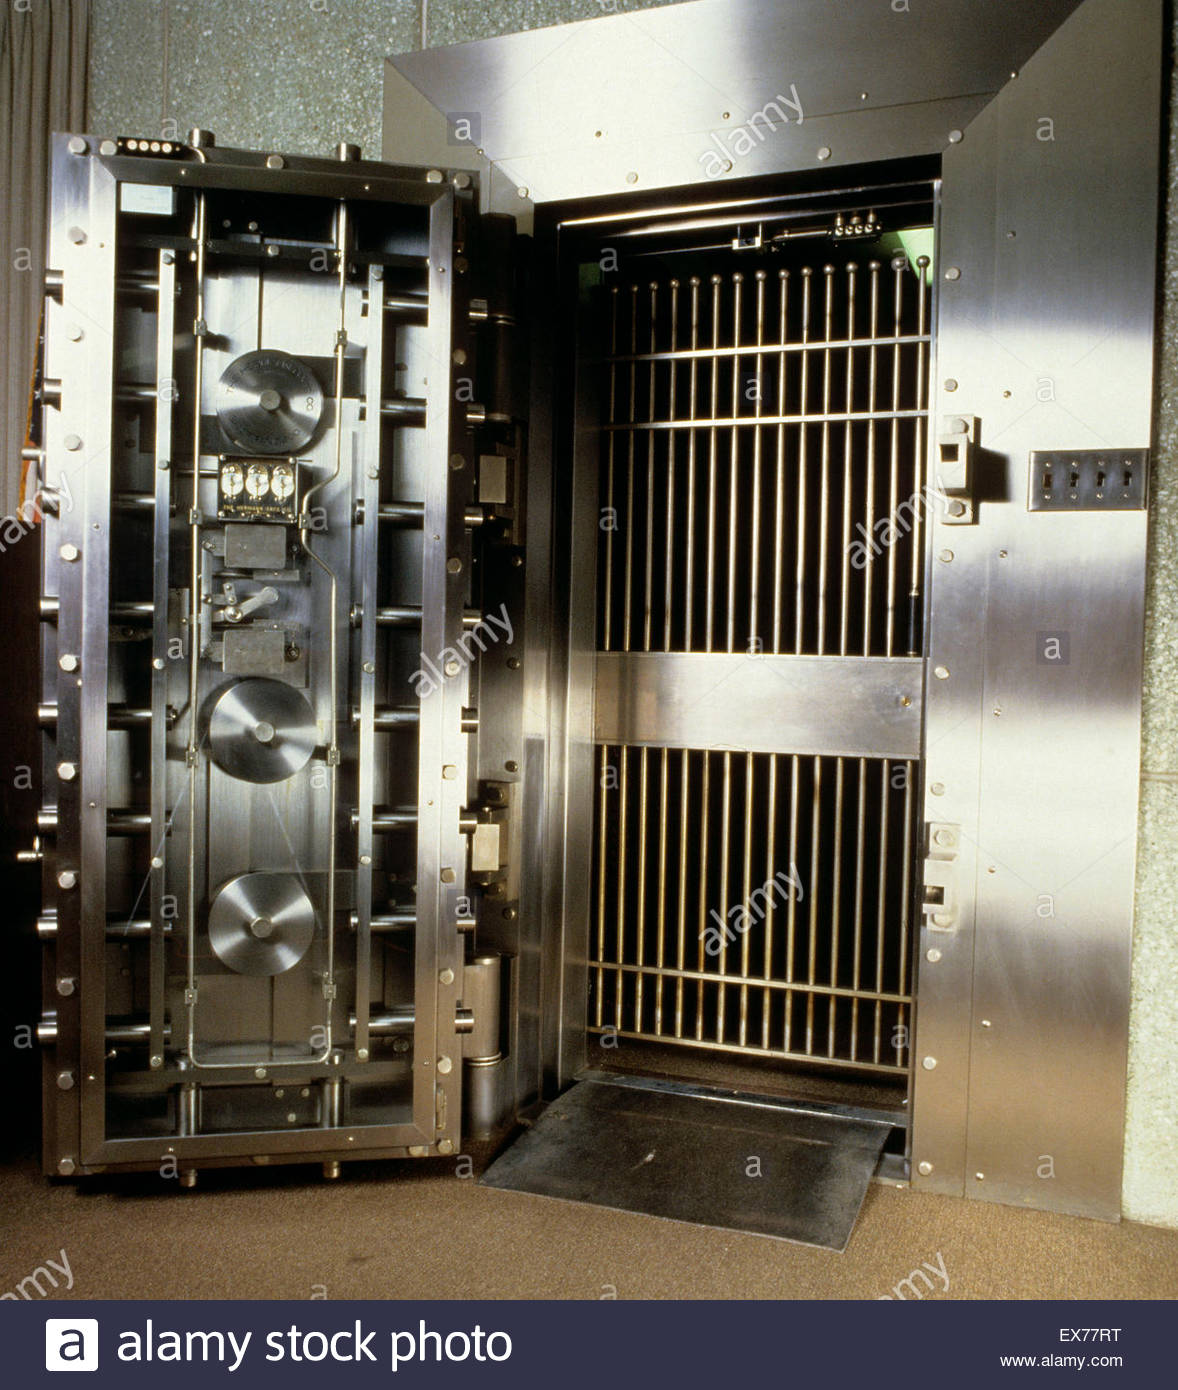 Bank vault door. - Stock Image